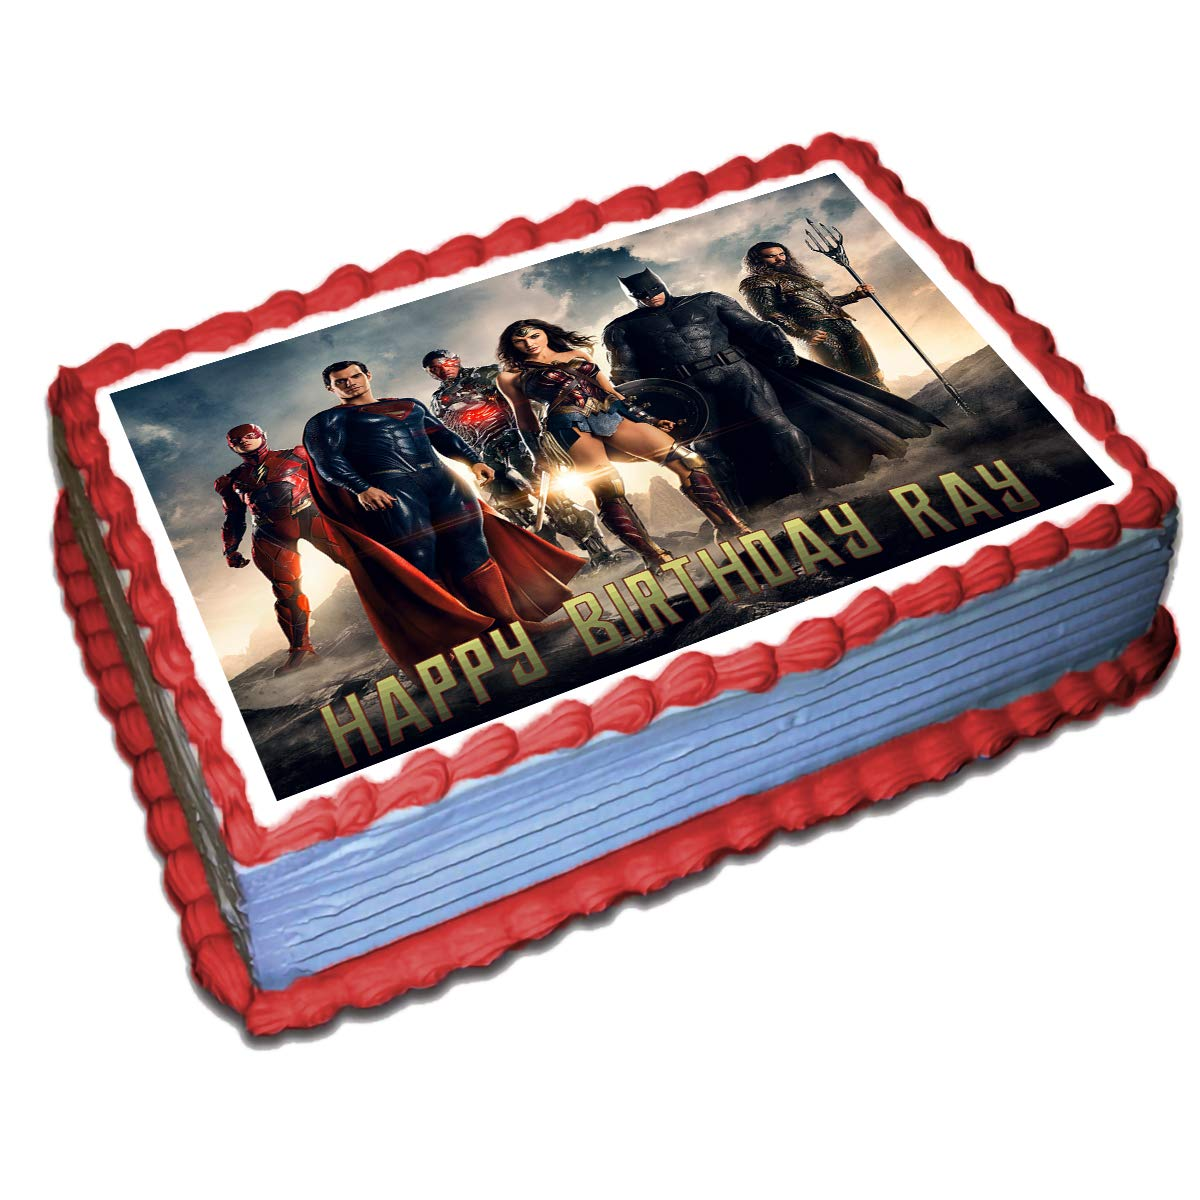 Justice League Edible Cake Topper Image Decoration Party frosting icing sheet